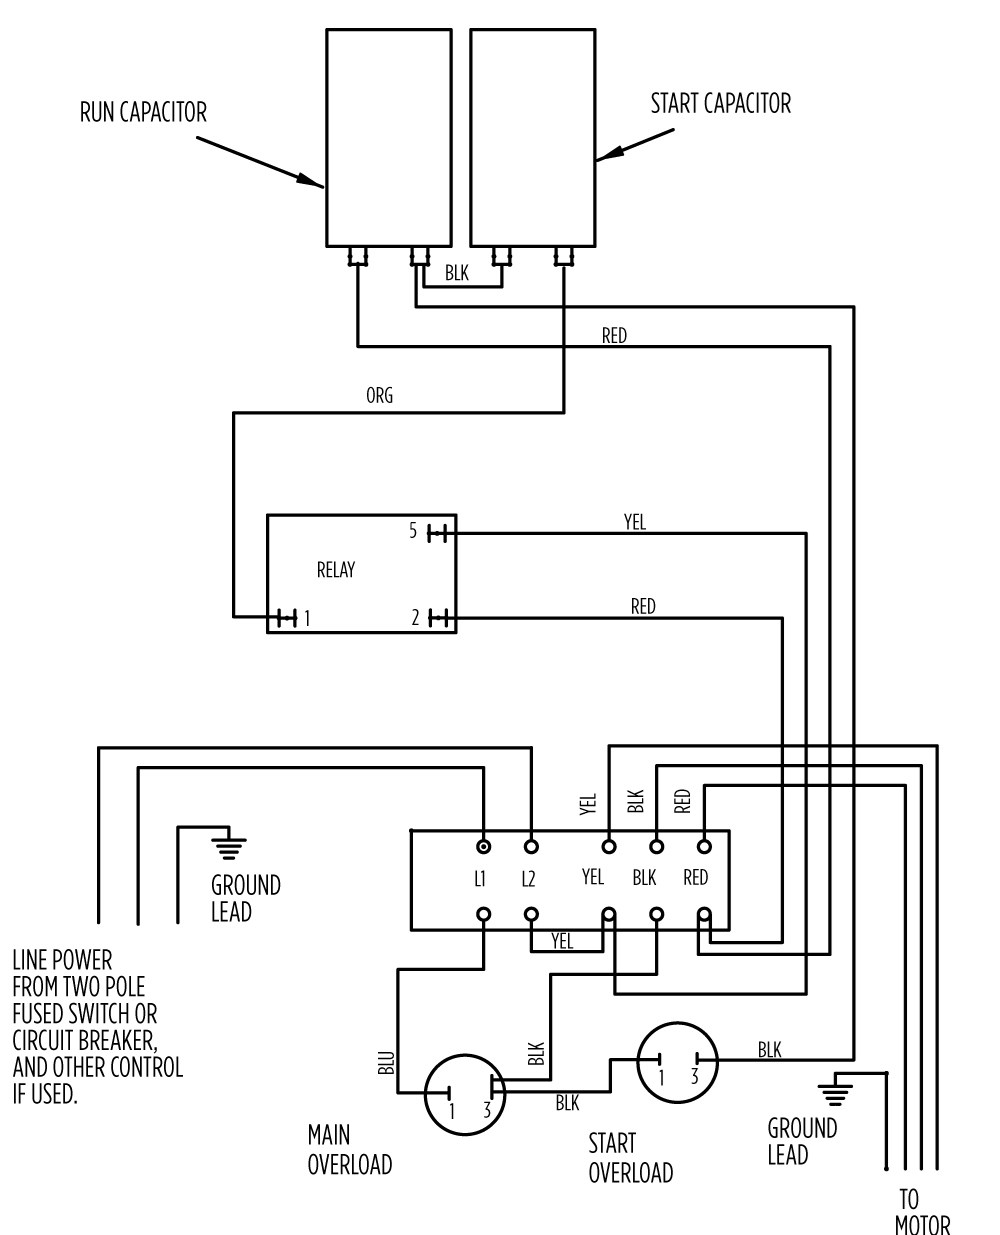 aim manual page 55 single phase motors and controls motor rh franklinwater com Bglt-89-Case Light Wiring Diagram Receptacle Wiring-Diagram